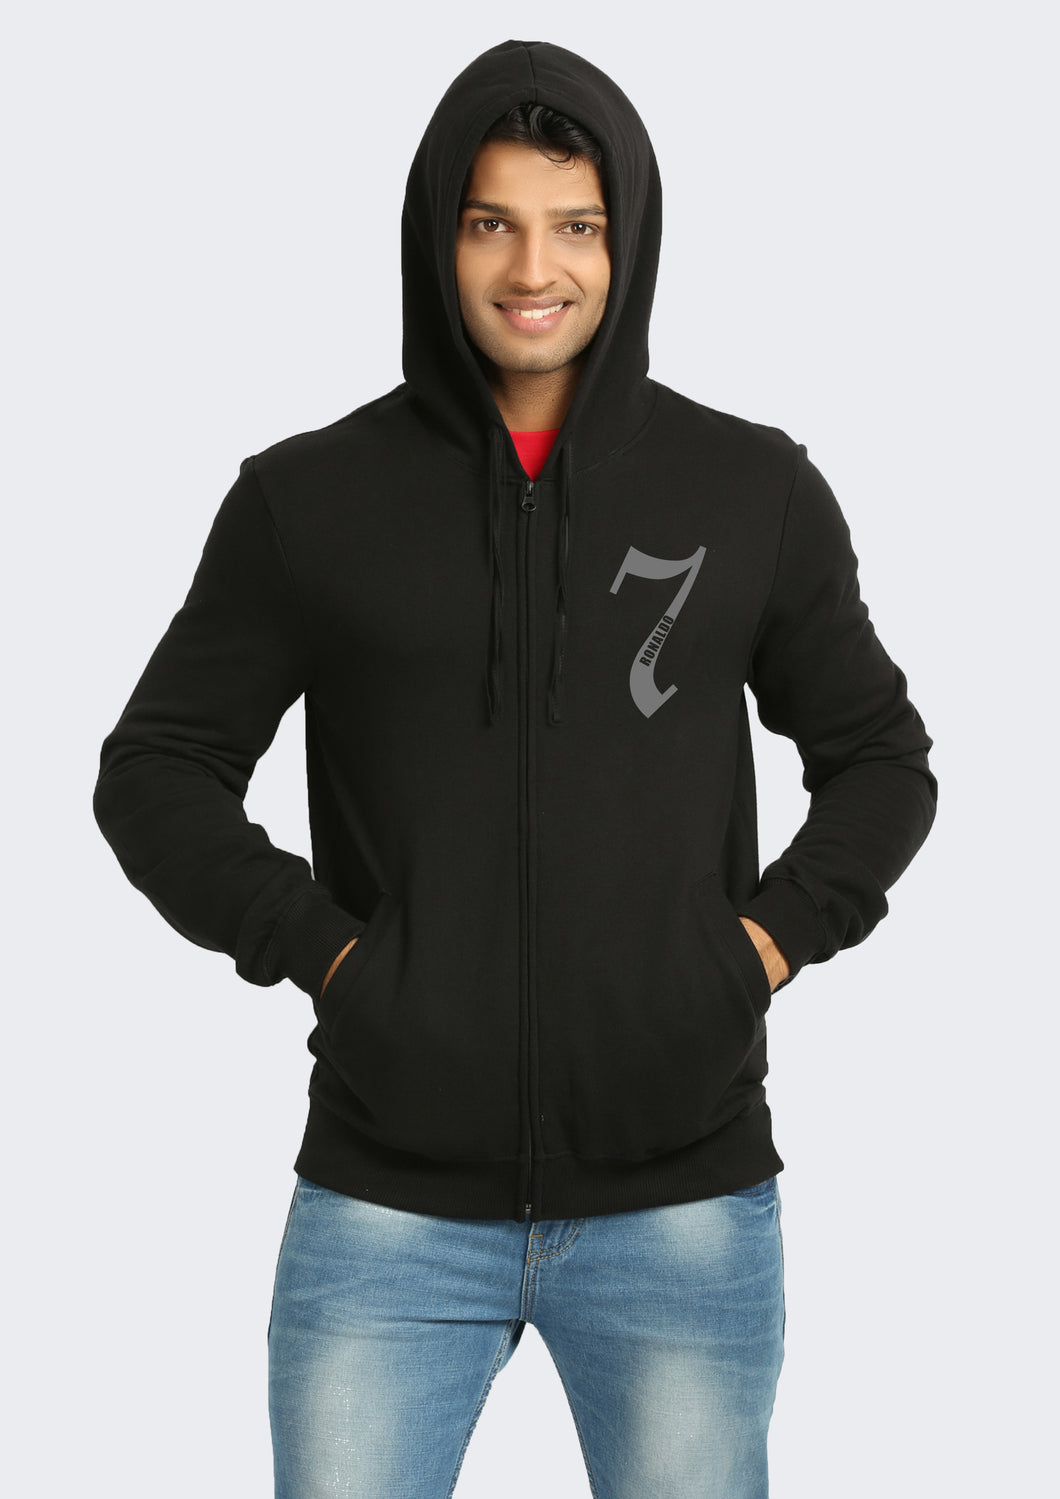 Real Madrid Cristiano Ronaldo Black Hoodie Front